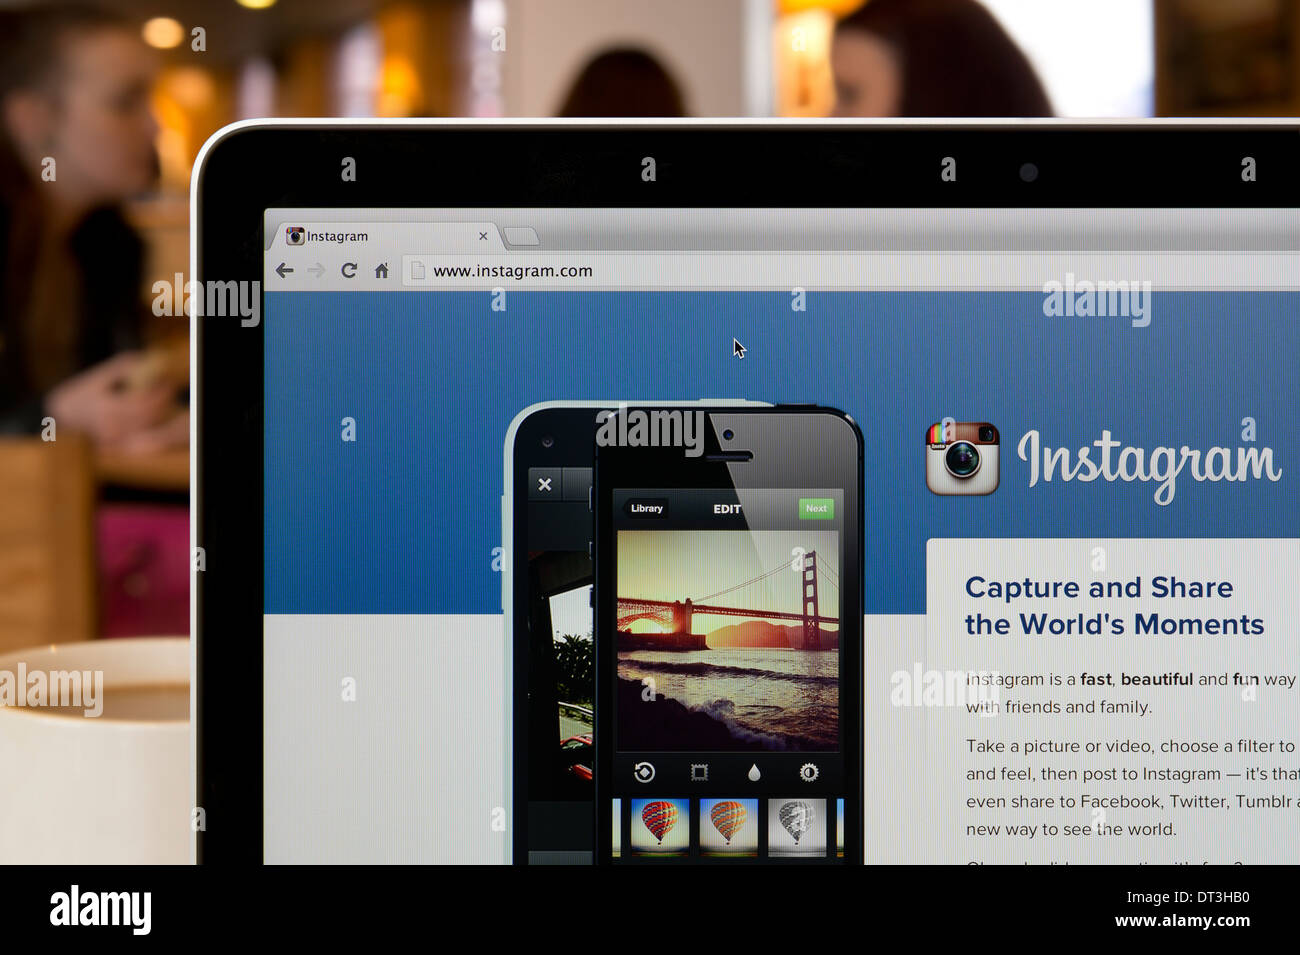 The Instagram website shot in a coffee shop environment (Editorial use only: ­print, TV, e-book and editorial - Stock Image